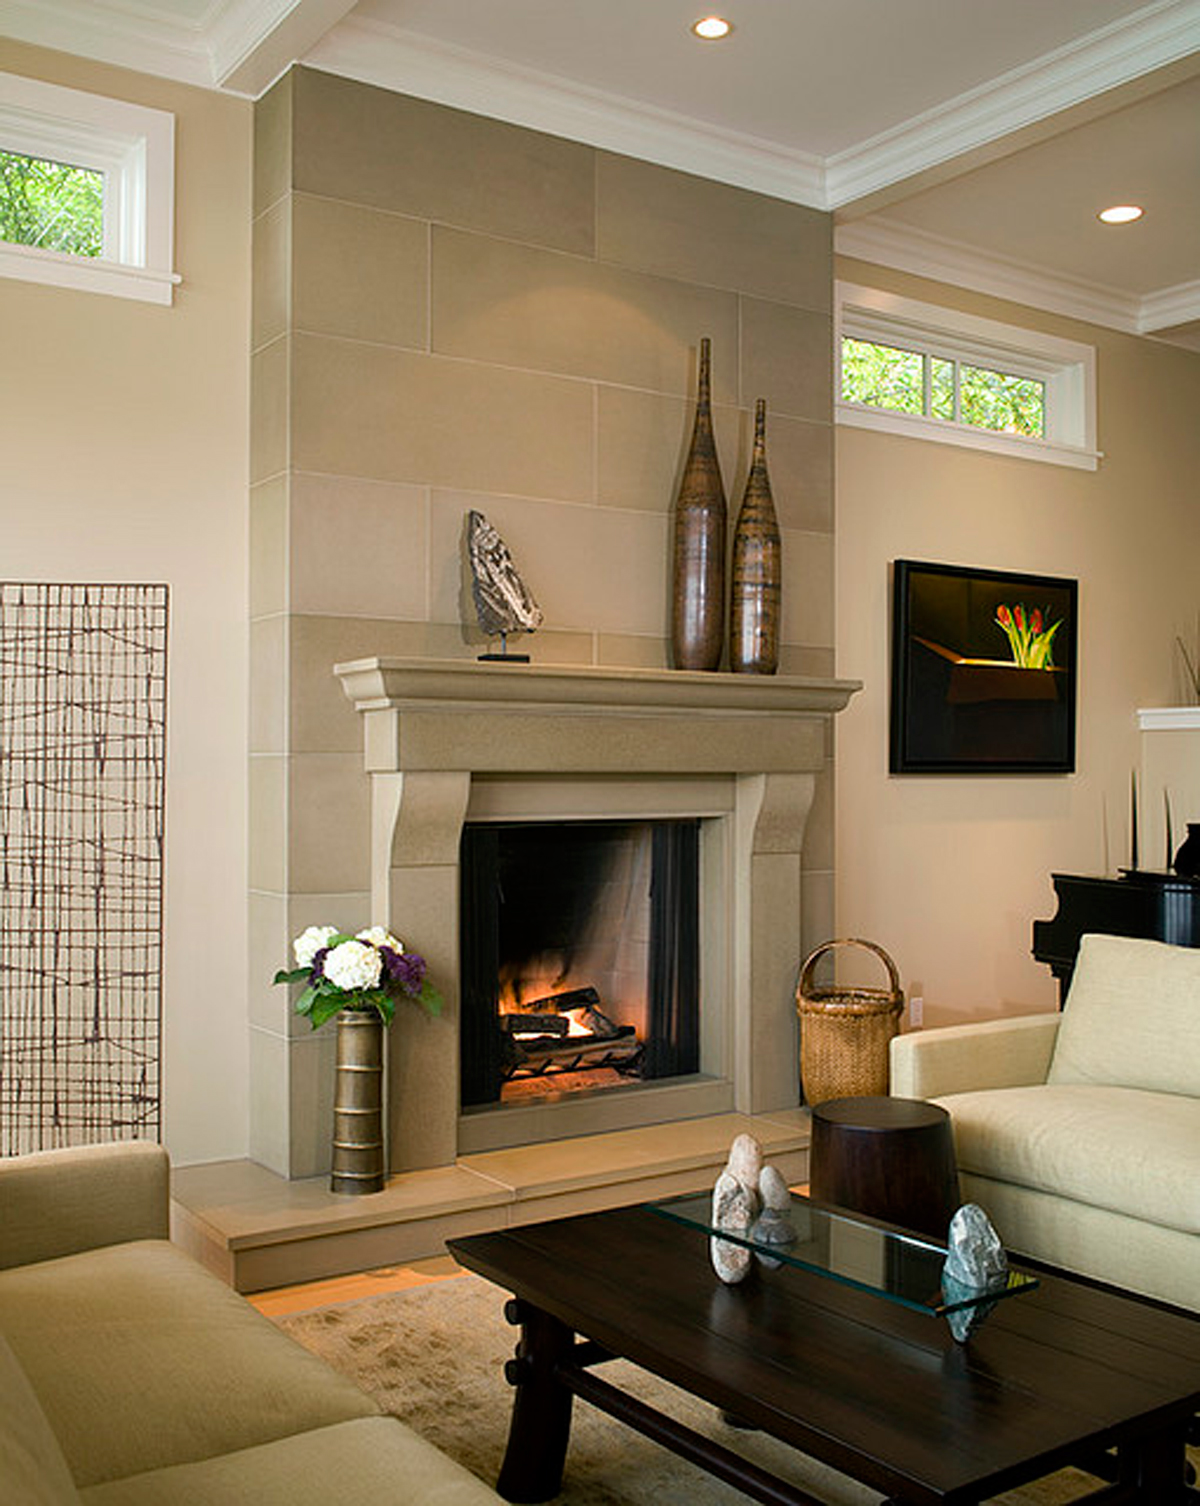 Fascinating fireplace designs pictures Fireplace design ideas